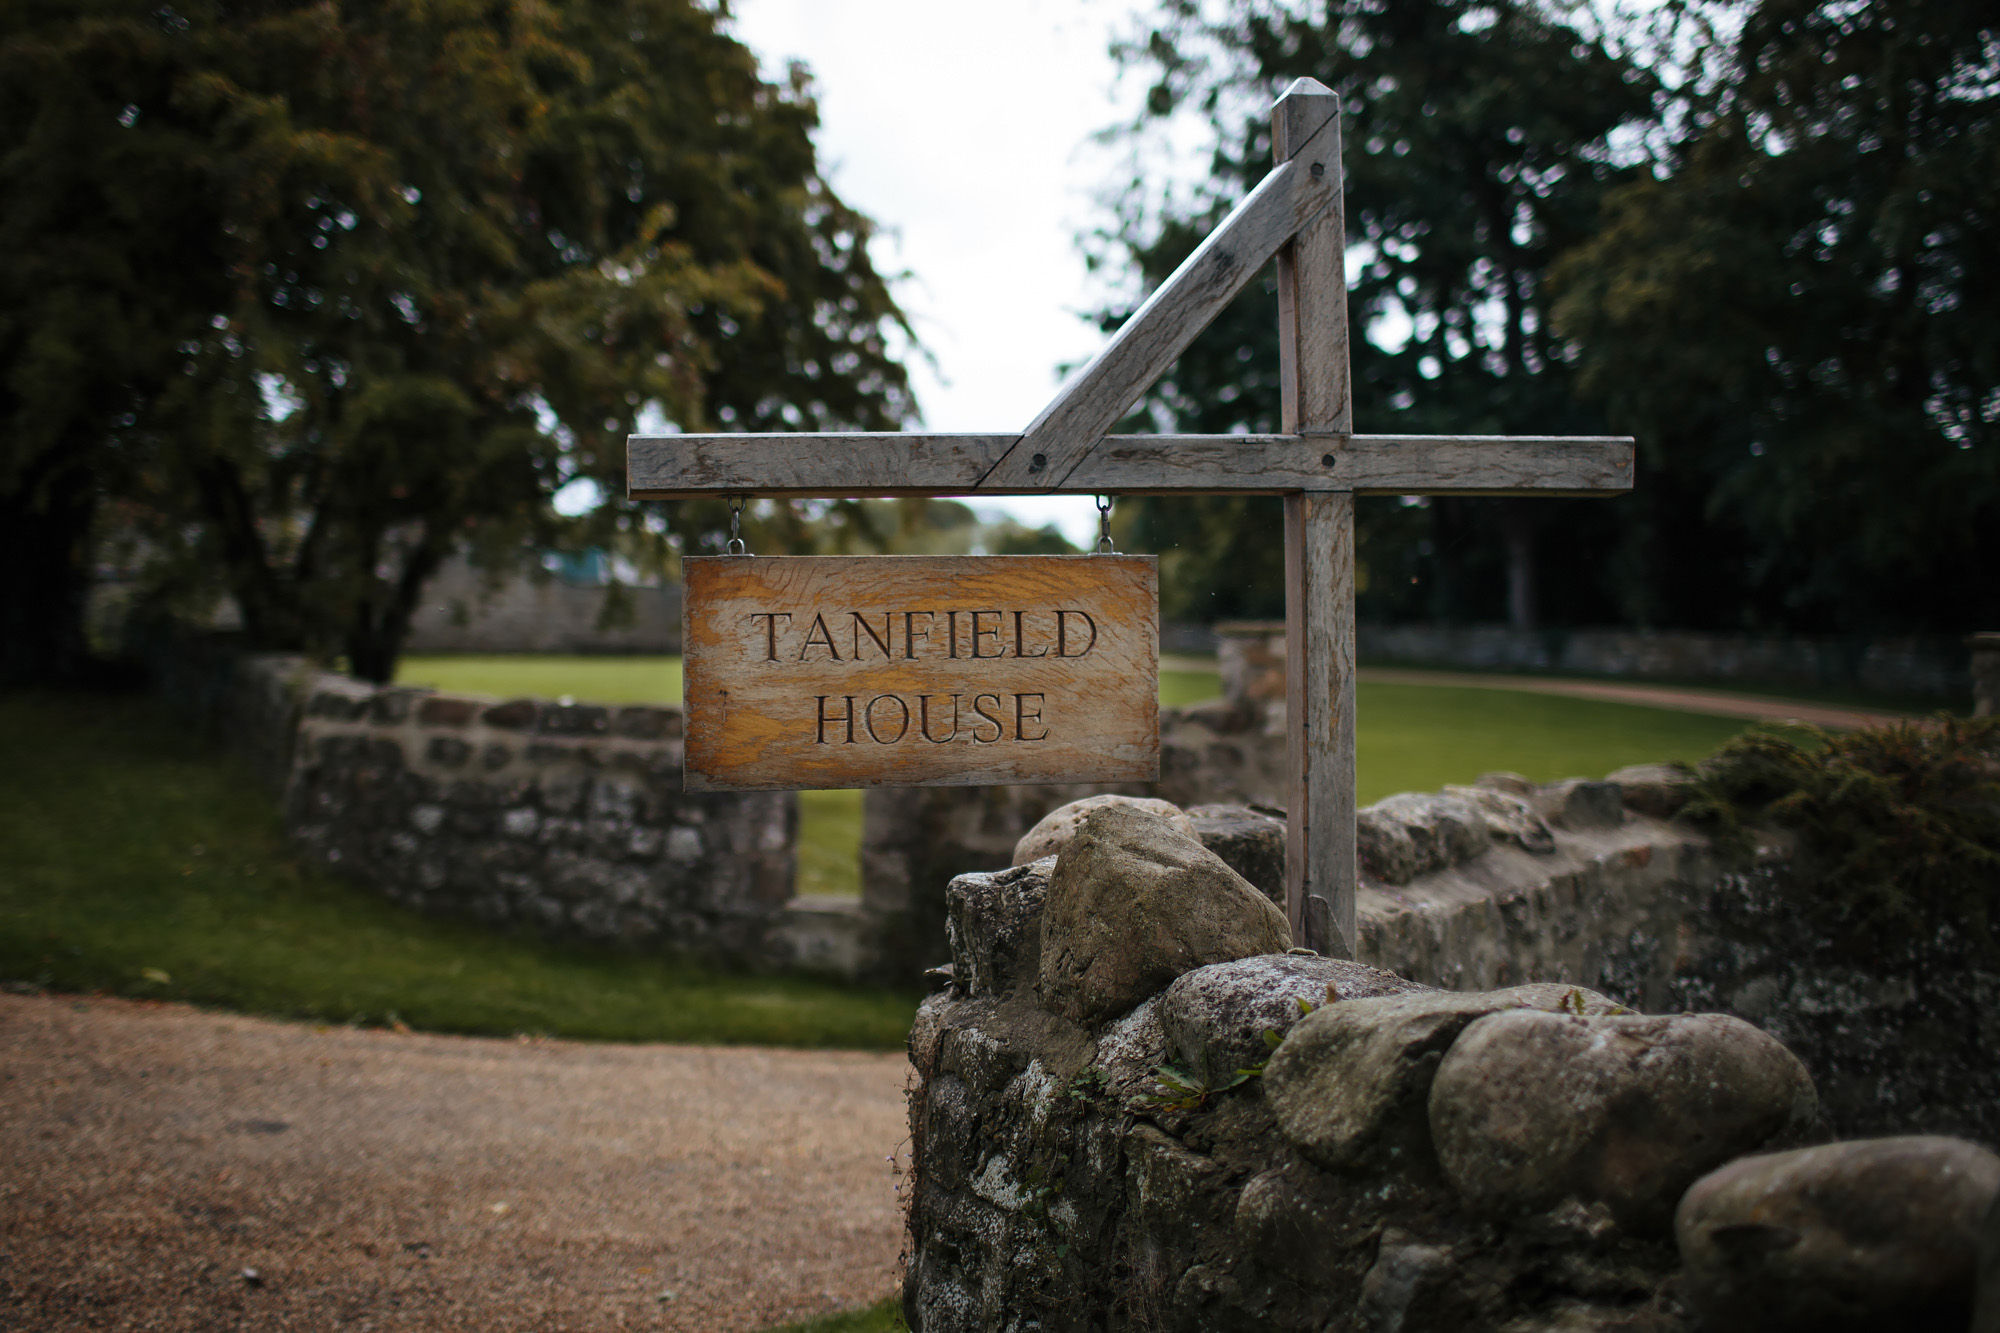 Wooden sign for Tanfield House by brick wall